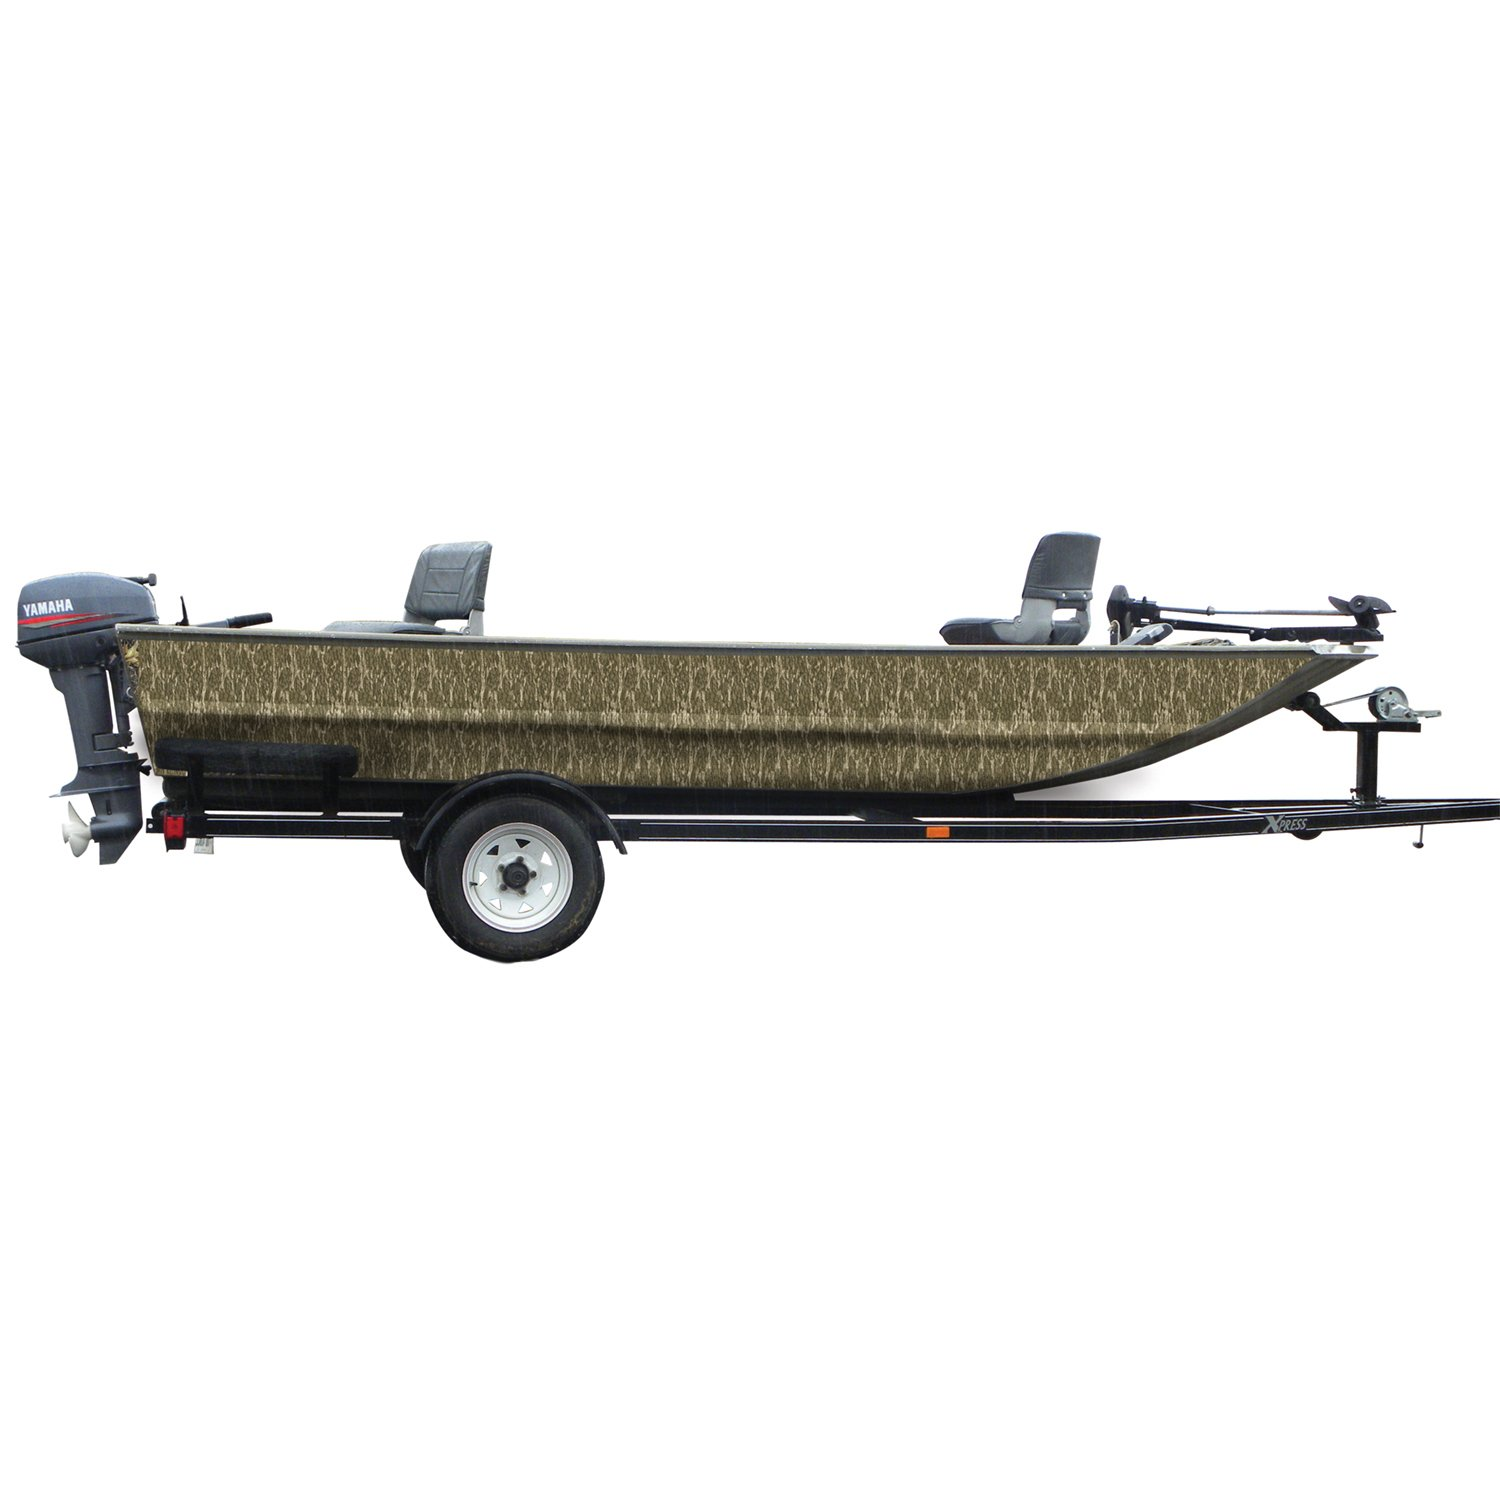 Mossy Oak Graphics 10004-16-BL Bottomland 18 x 16 Boat Sides Camouflage Kit with 2-Piece Camouflage Vinyl